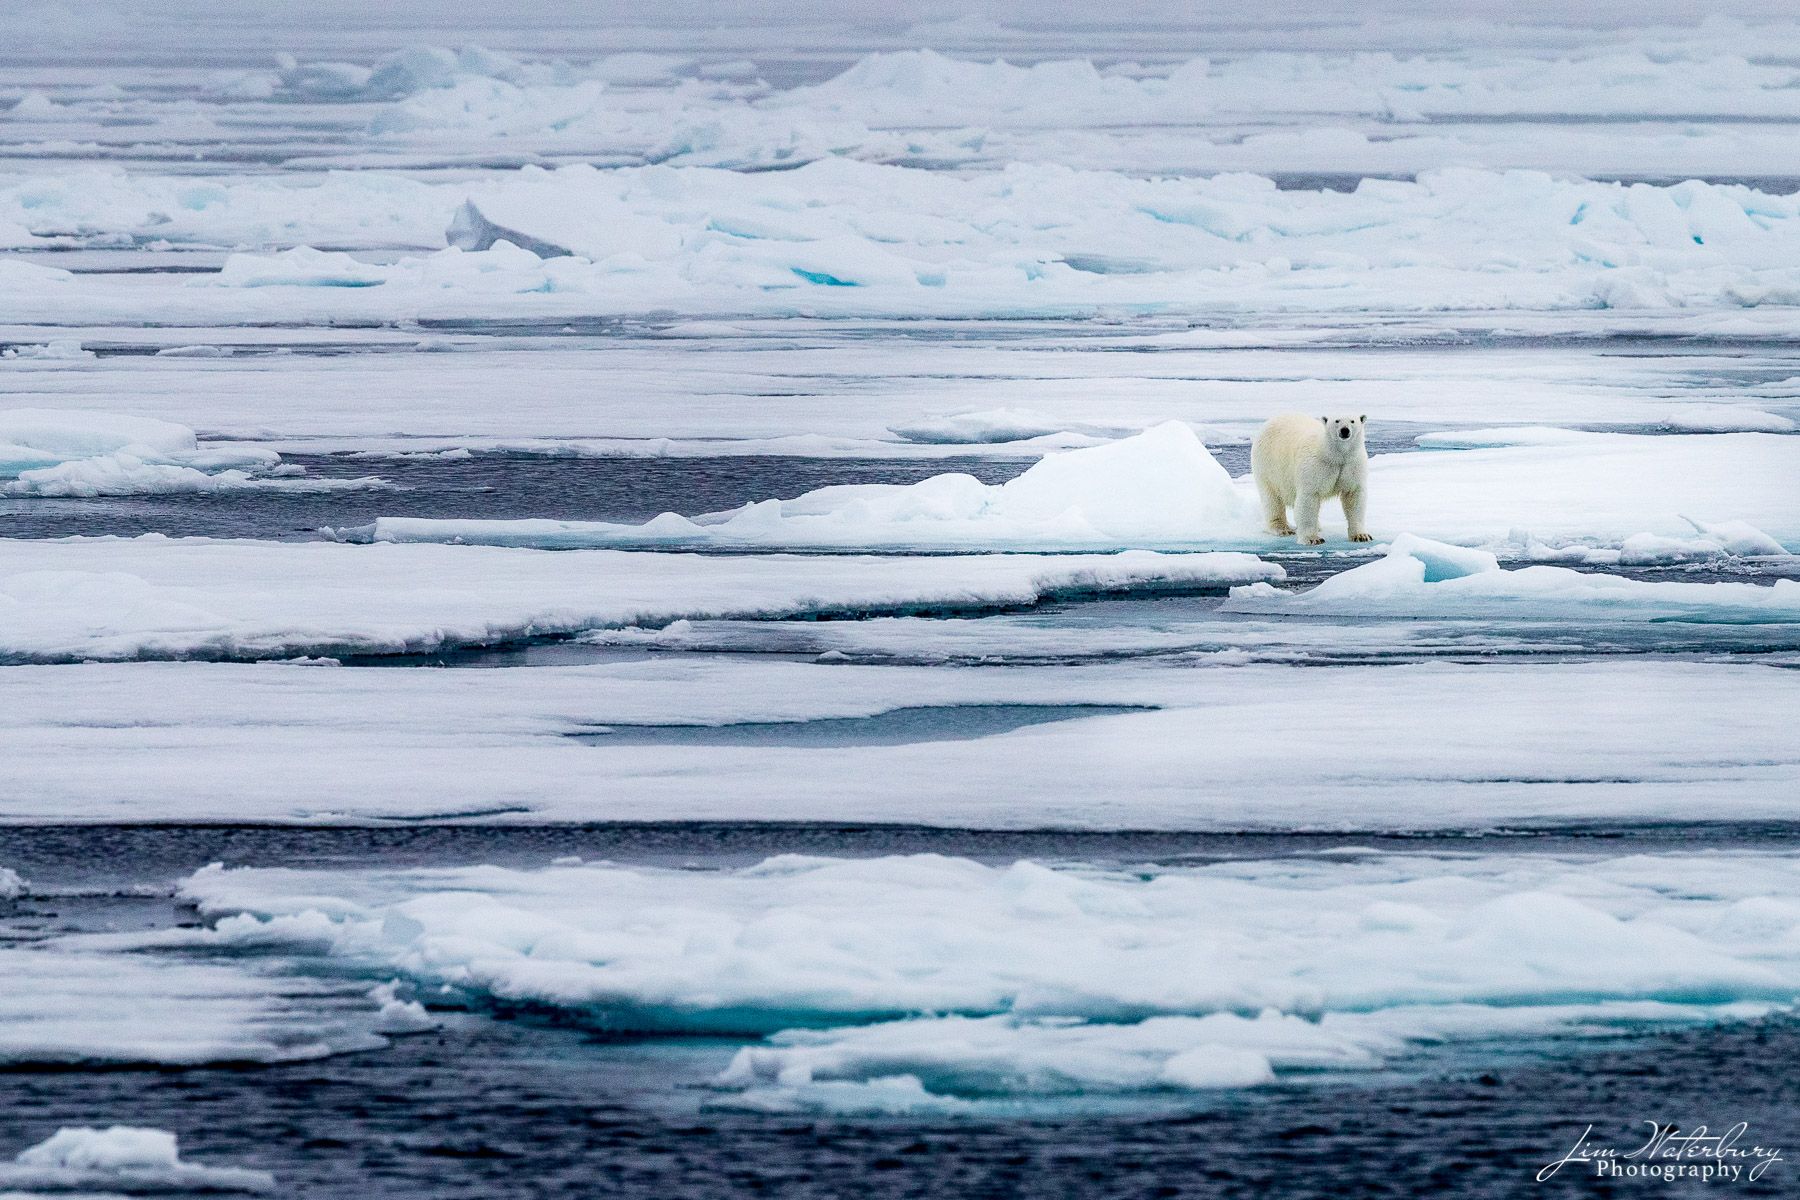 A polar bear looks out over the pack ice in the Arctic Ocean north of Svalbard, Norway.